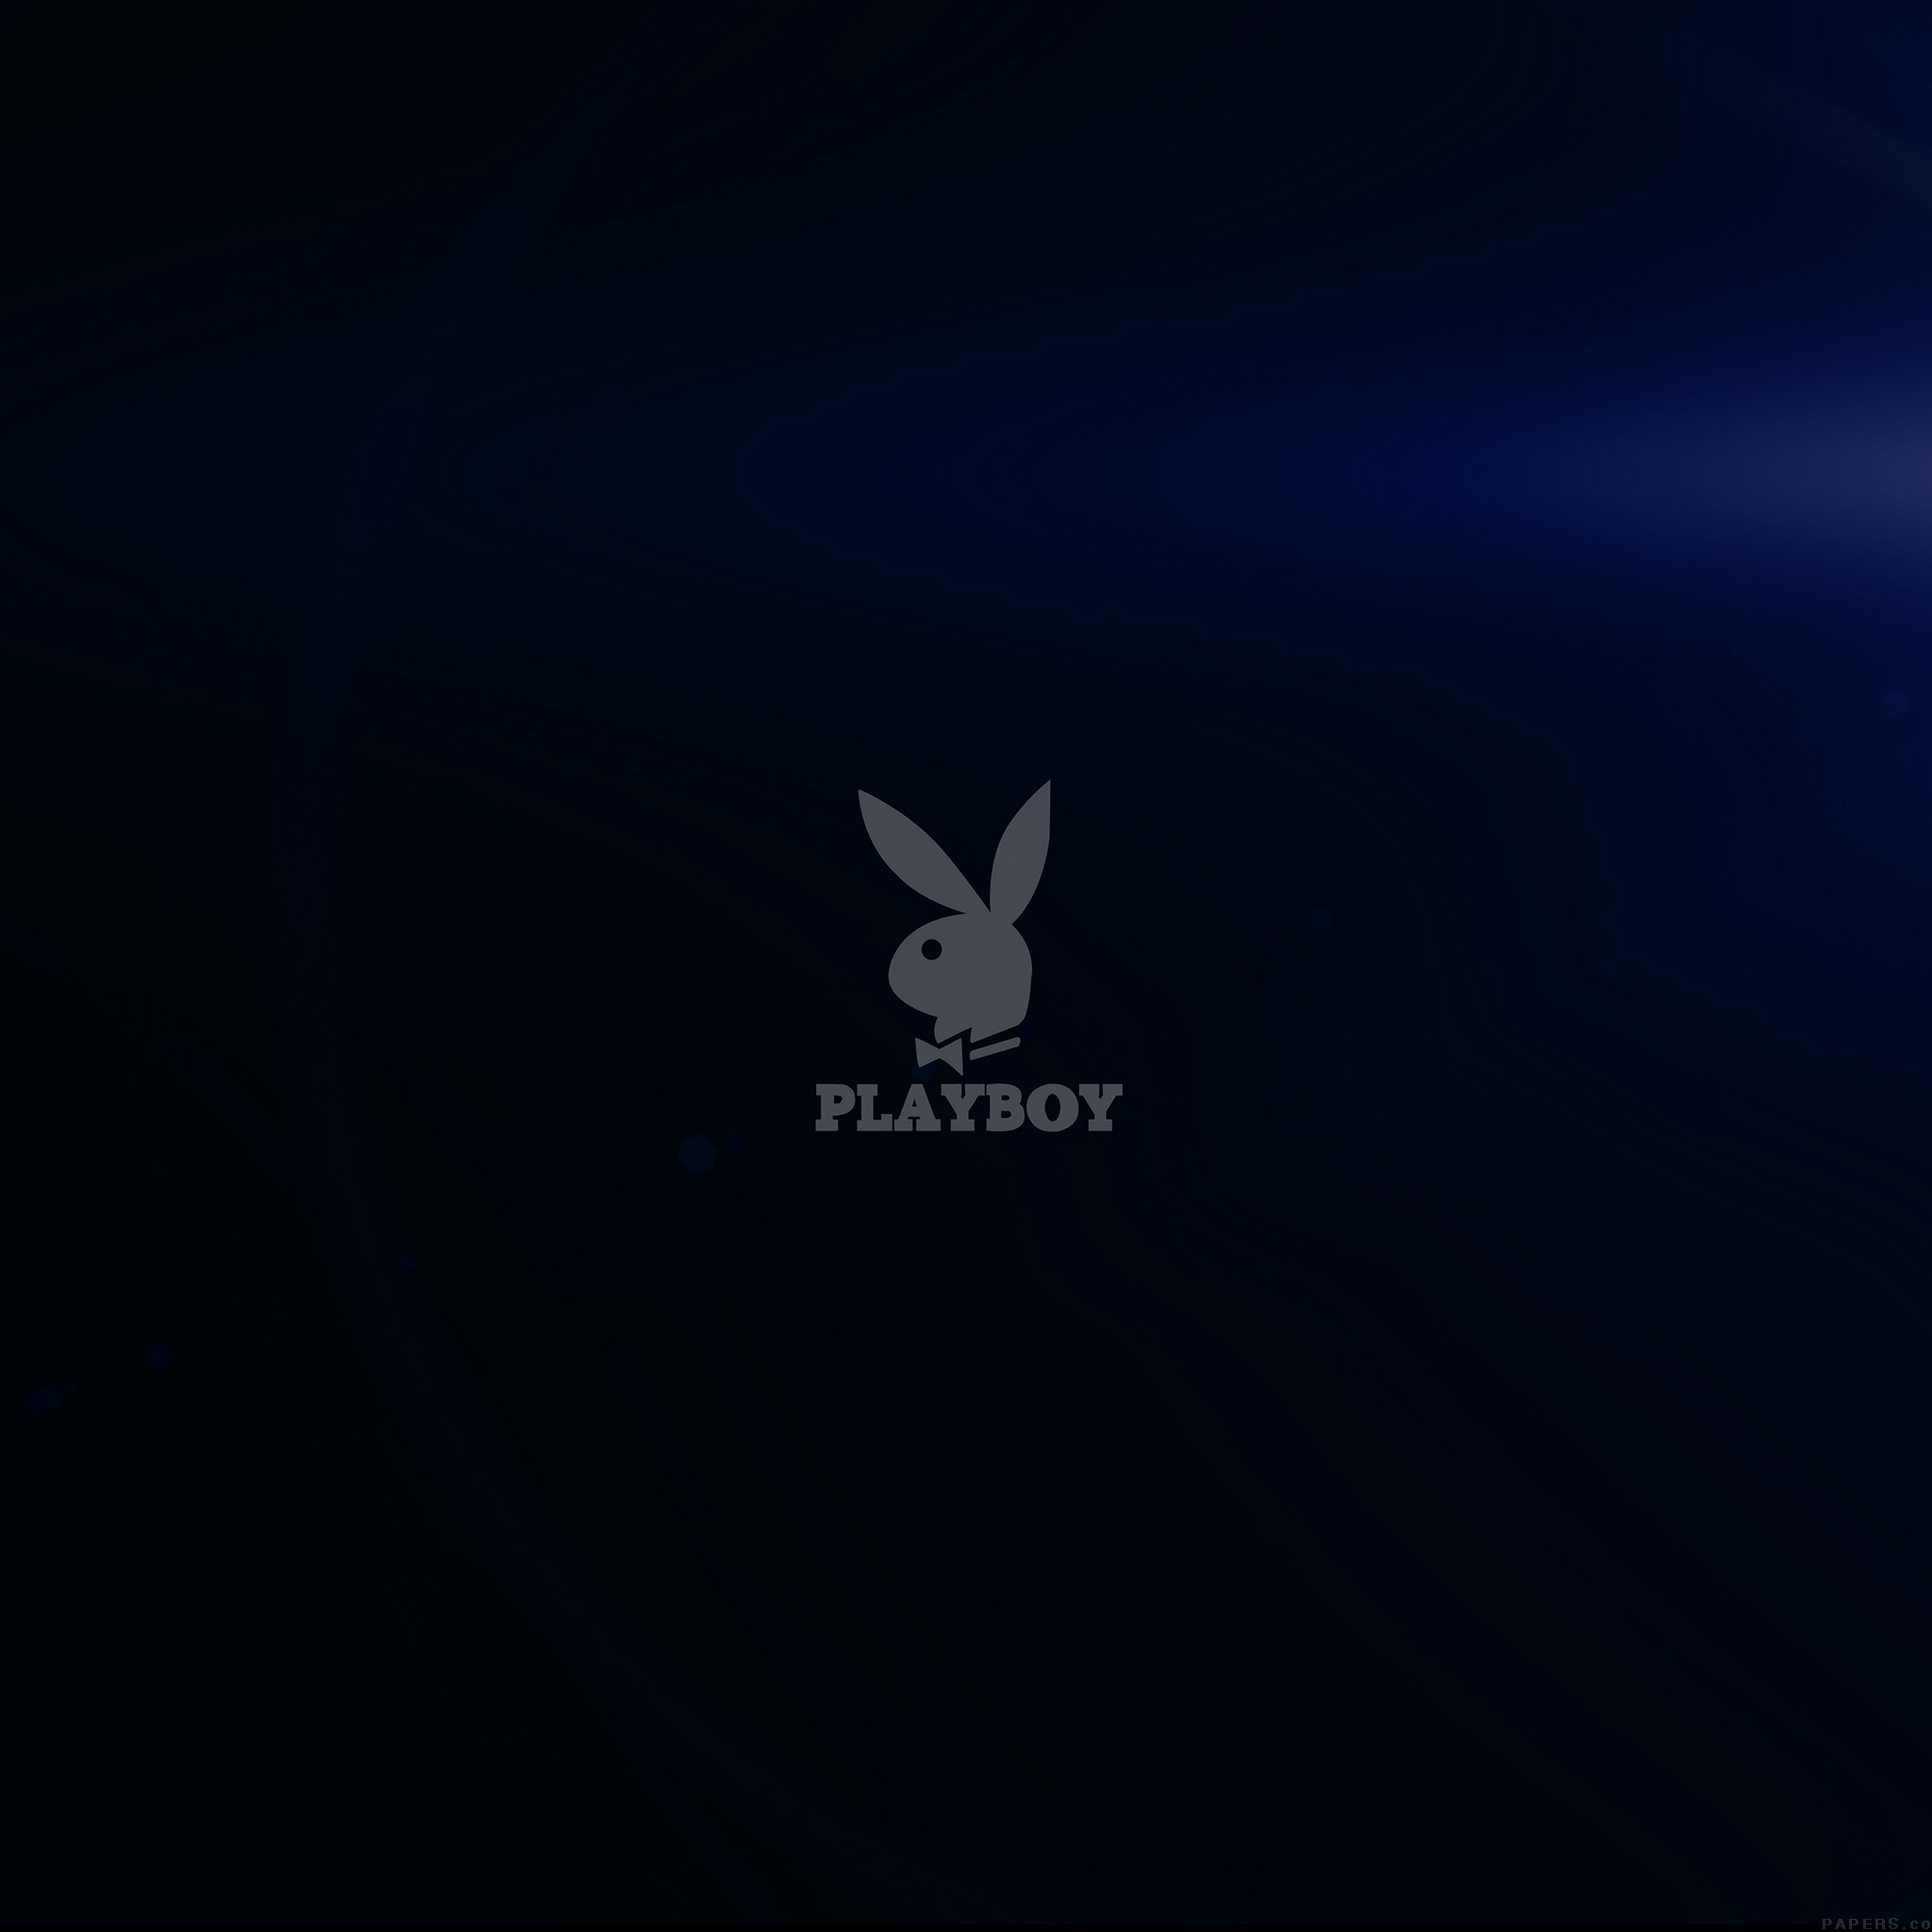 Gold Wallpaper Hd For Iphone 6 Ak53 Playboy Logo Dark Logo